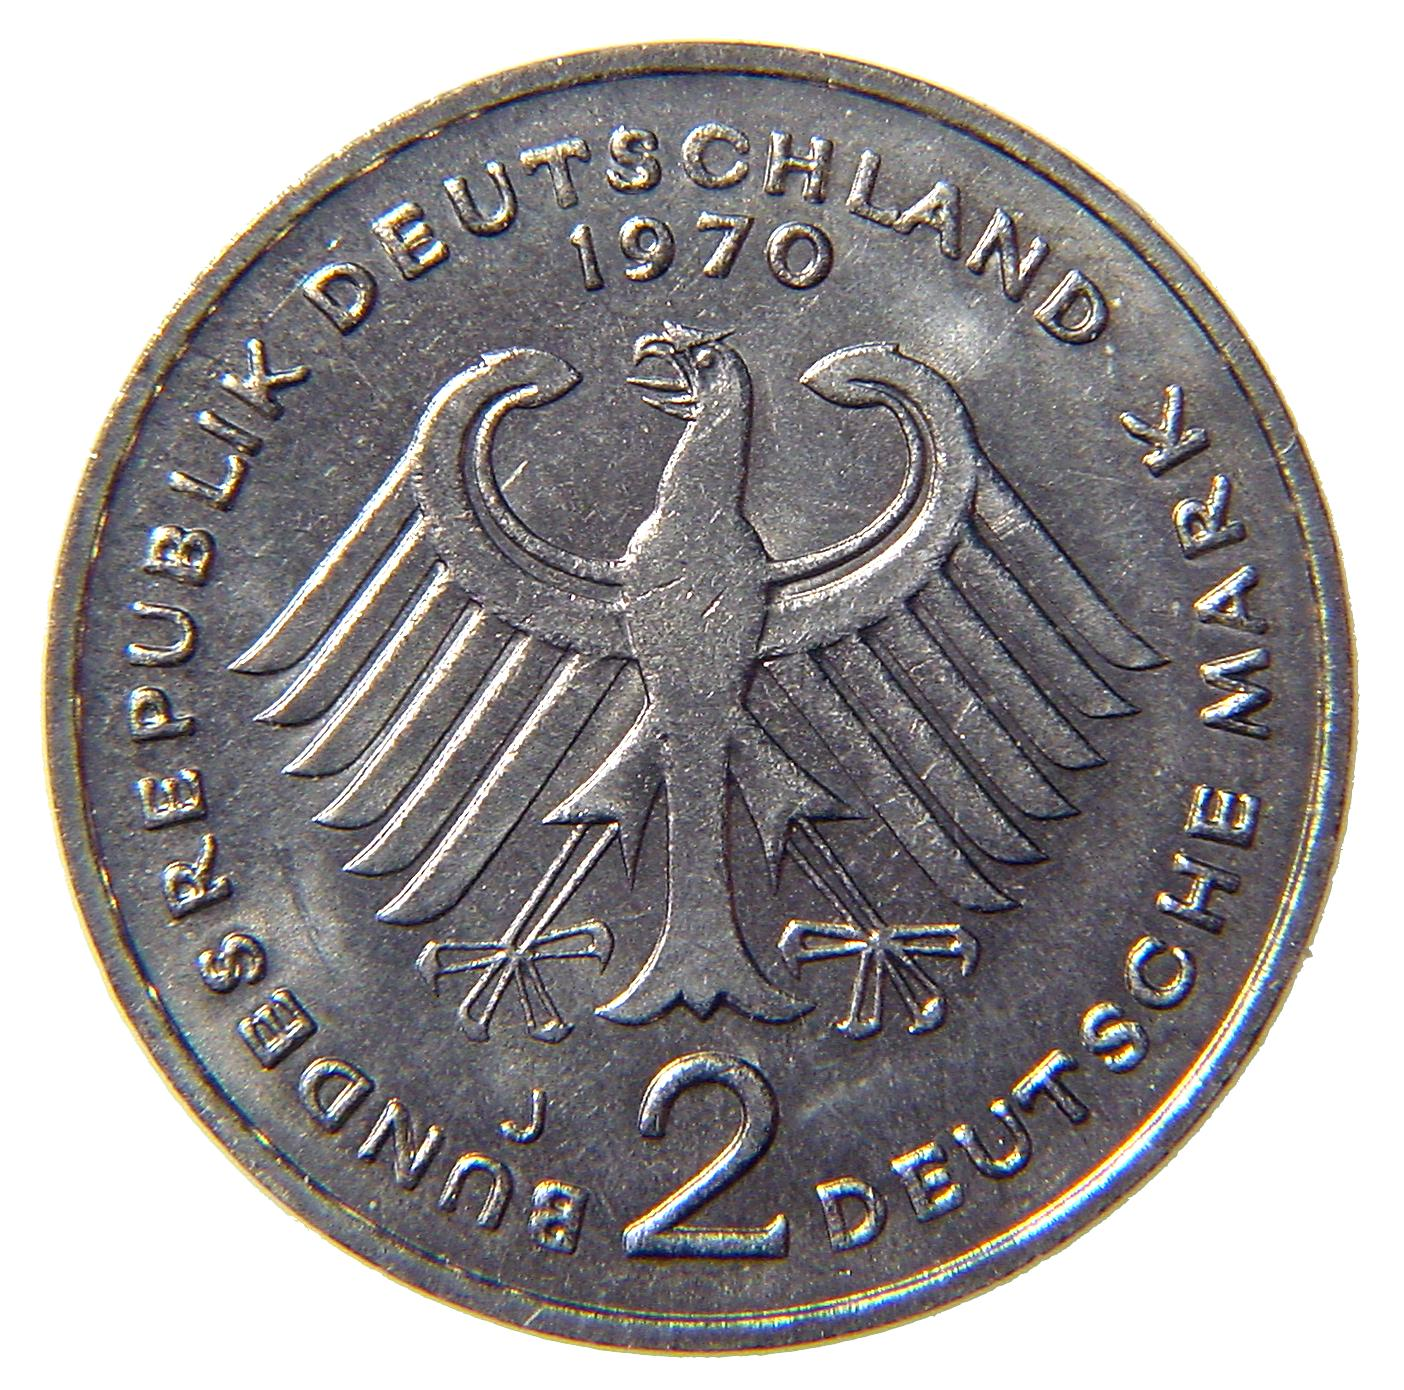 2-DM coin Heuss - reverse